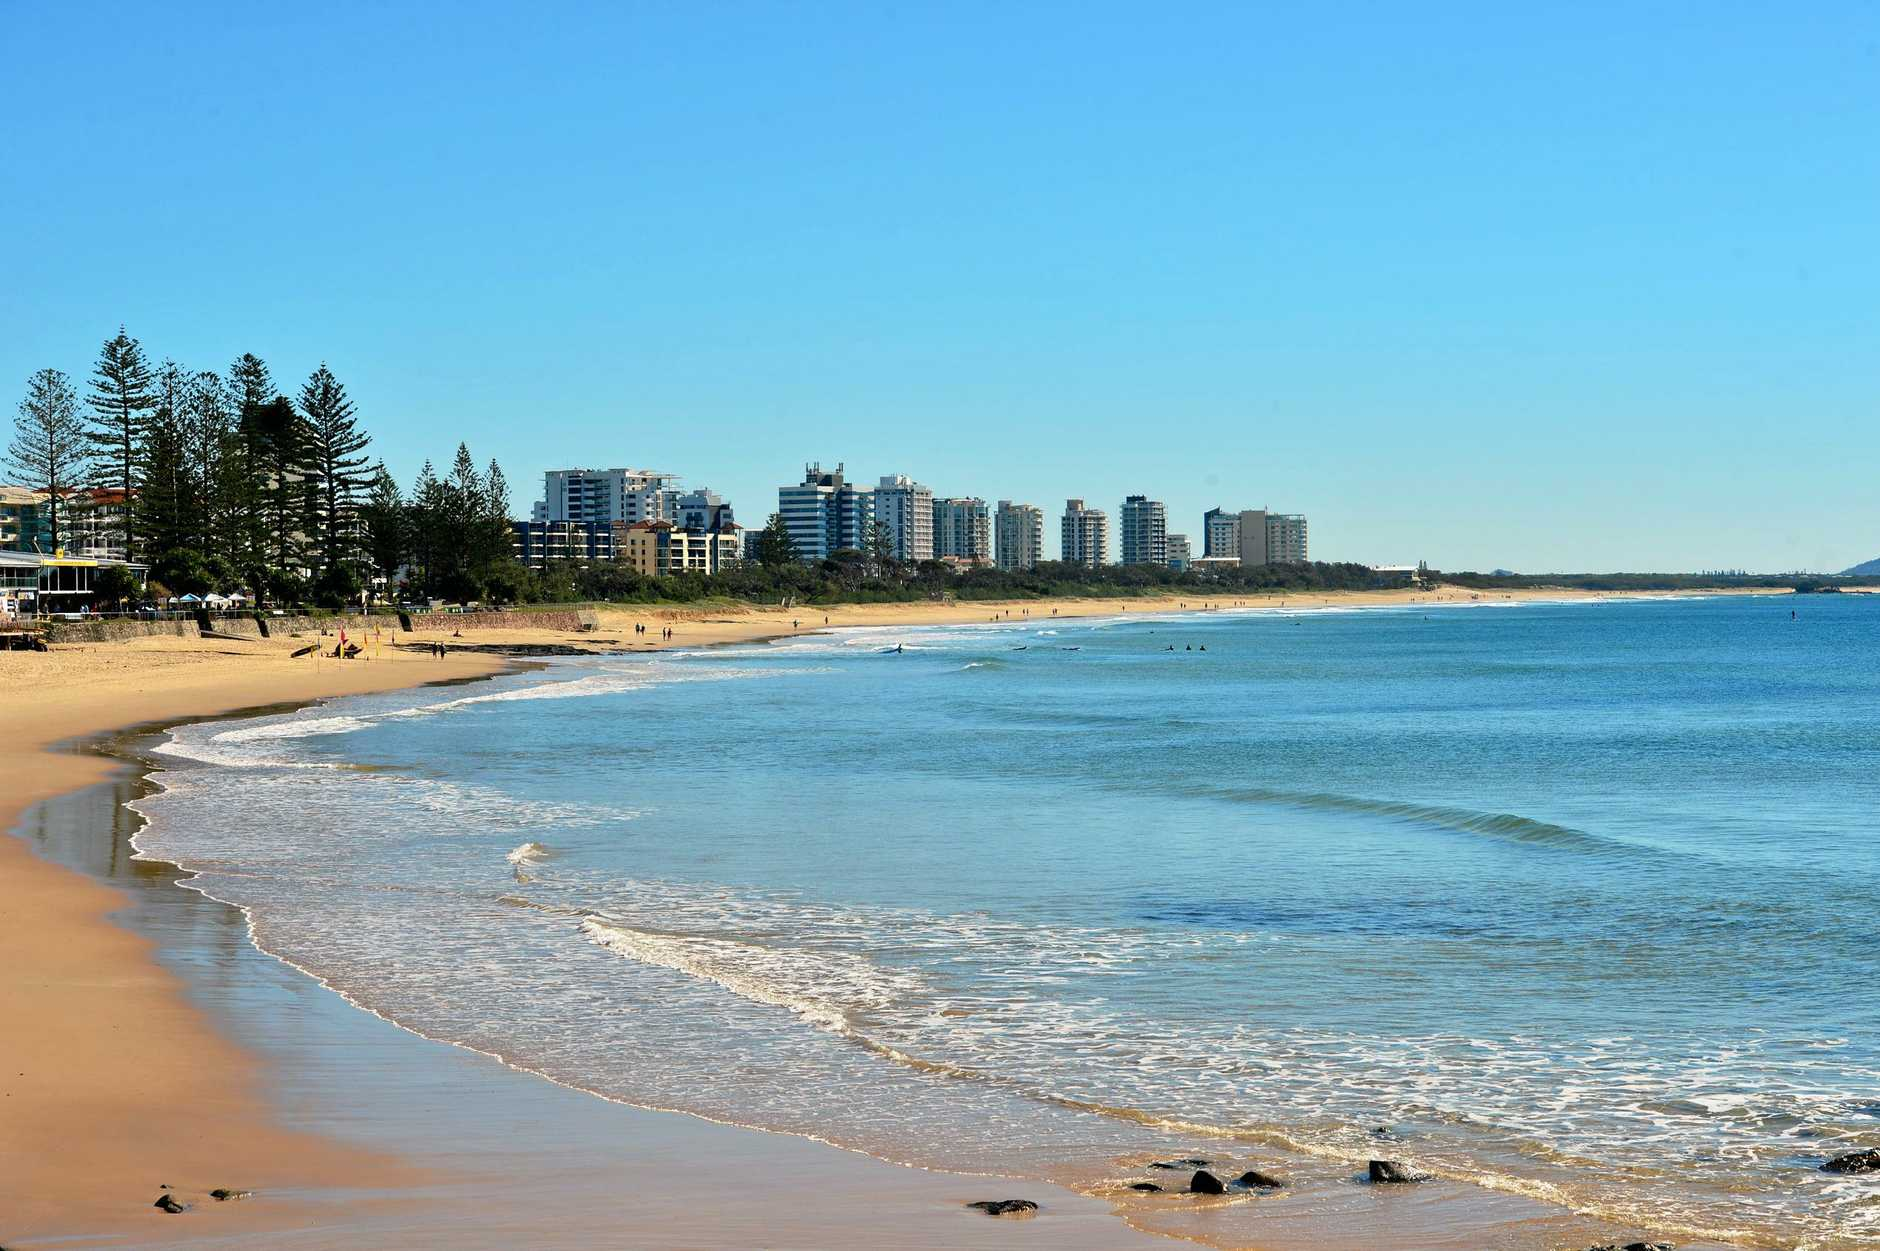 A desire for ocean views ended in a Sunshine Coast court today.